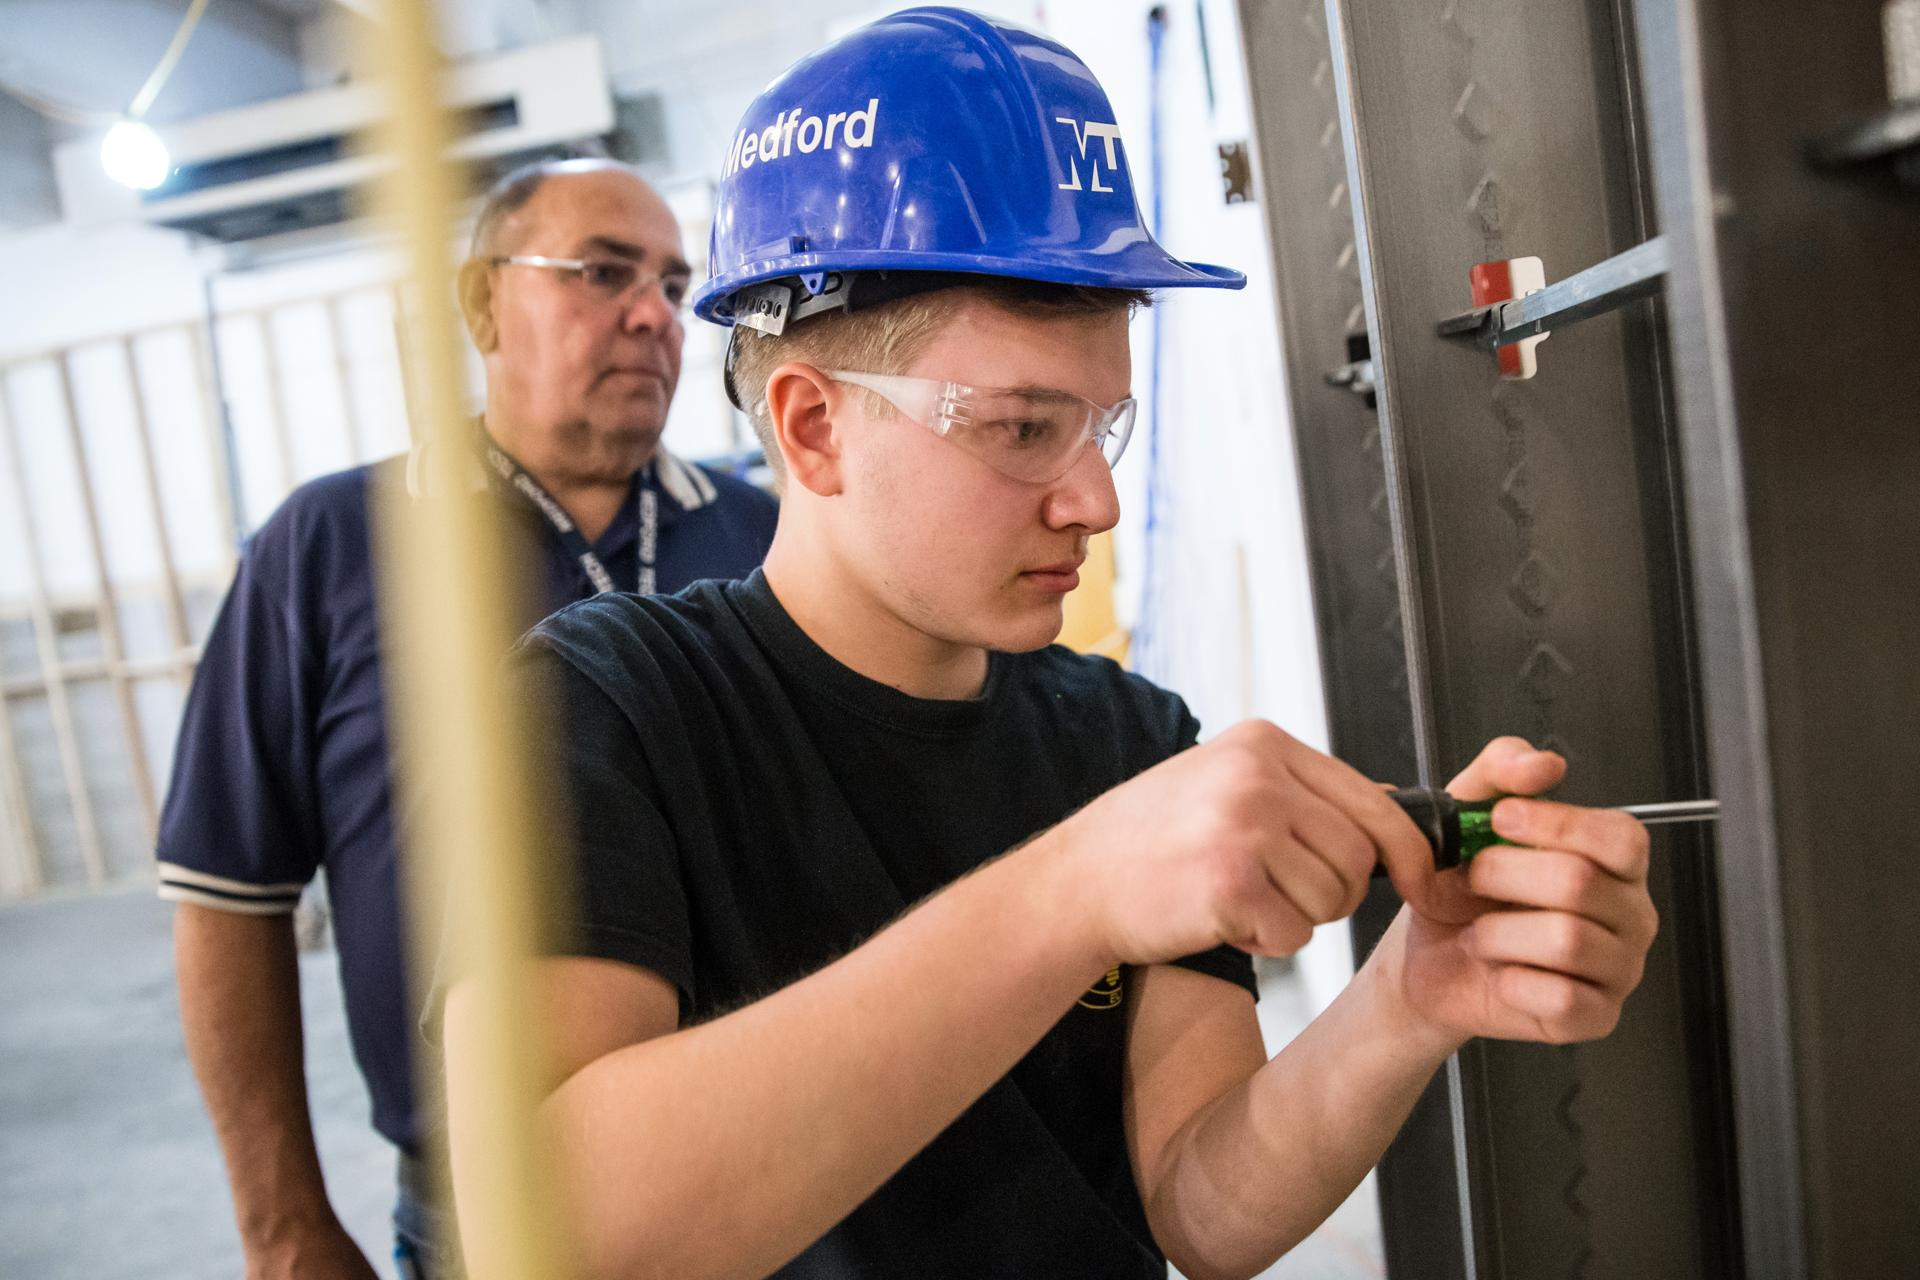 05/08/2017 MEDFORD, MA Electrical teacher Rich Cormio (cq) (left) watches as Matt Grant (cq) 16, installs an outlet at Medford Vocational Technical High School. (Aram Boghosian for The Boston Globe)